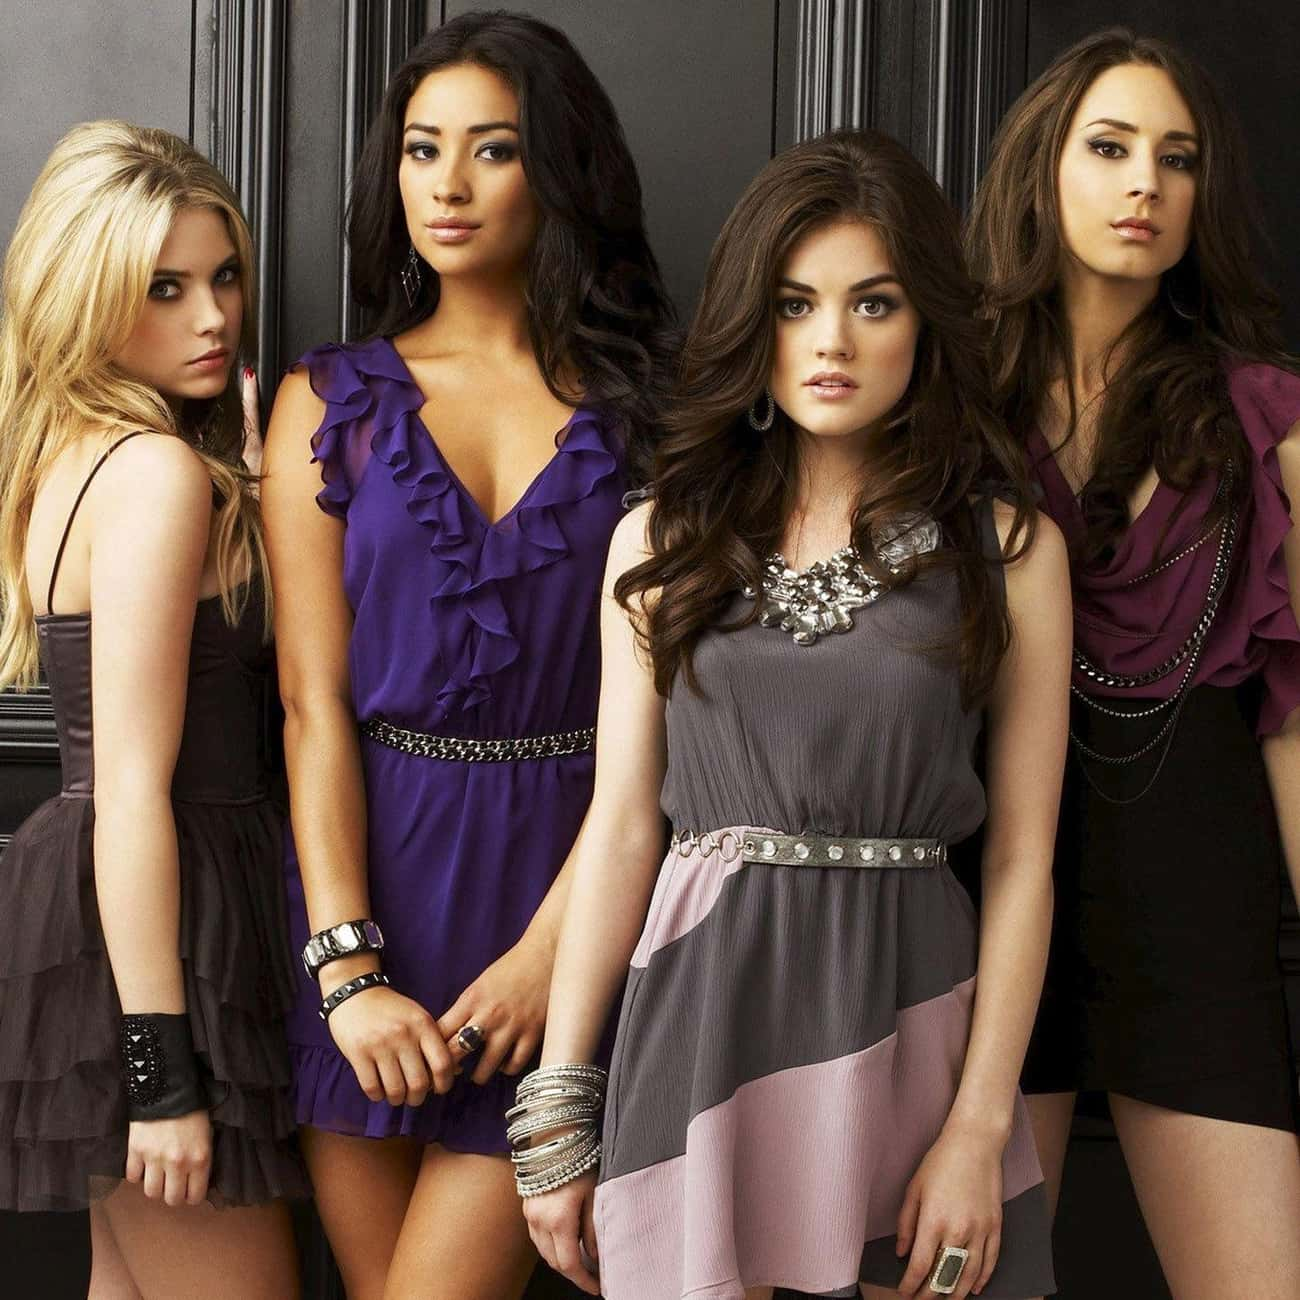 Pretty Little Liars is listed (or ranked) 3 on the list TV Shows with the Hottest Casts